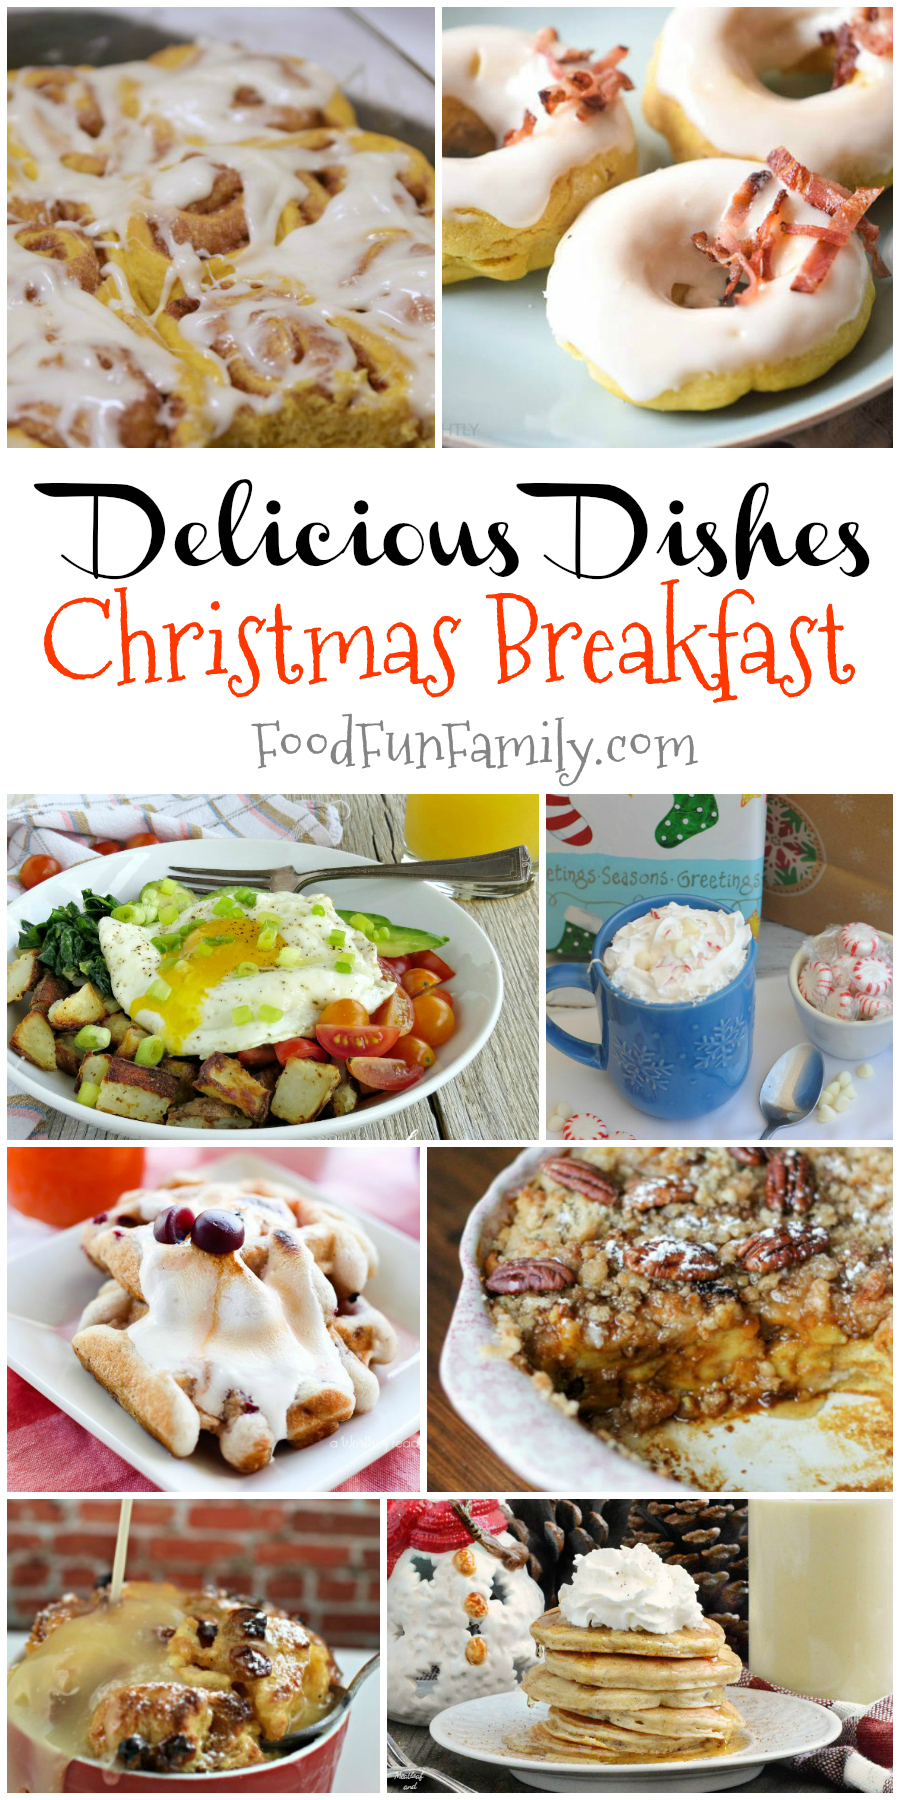 Christmas morning breakfast recipes - featured breakfast ideas from Delicious Dishes Recipe Party